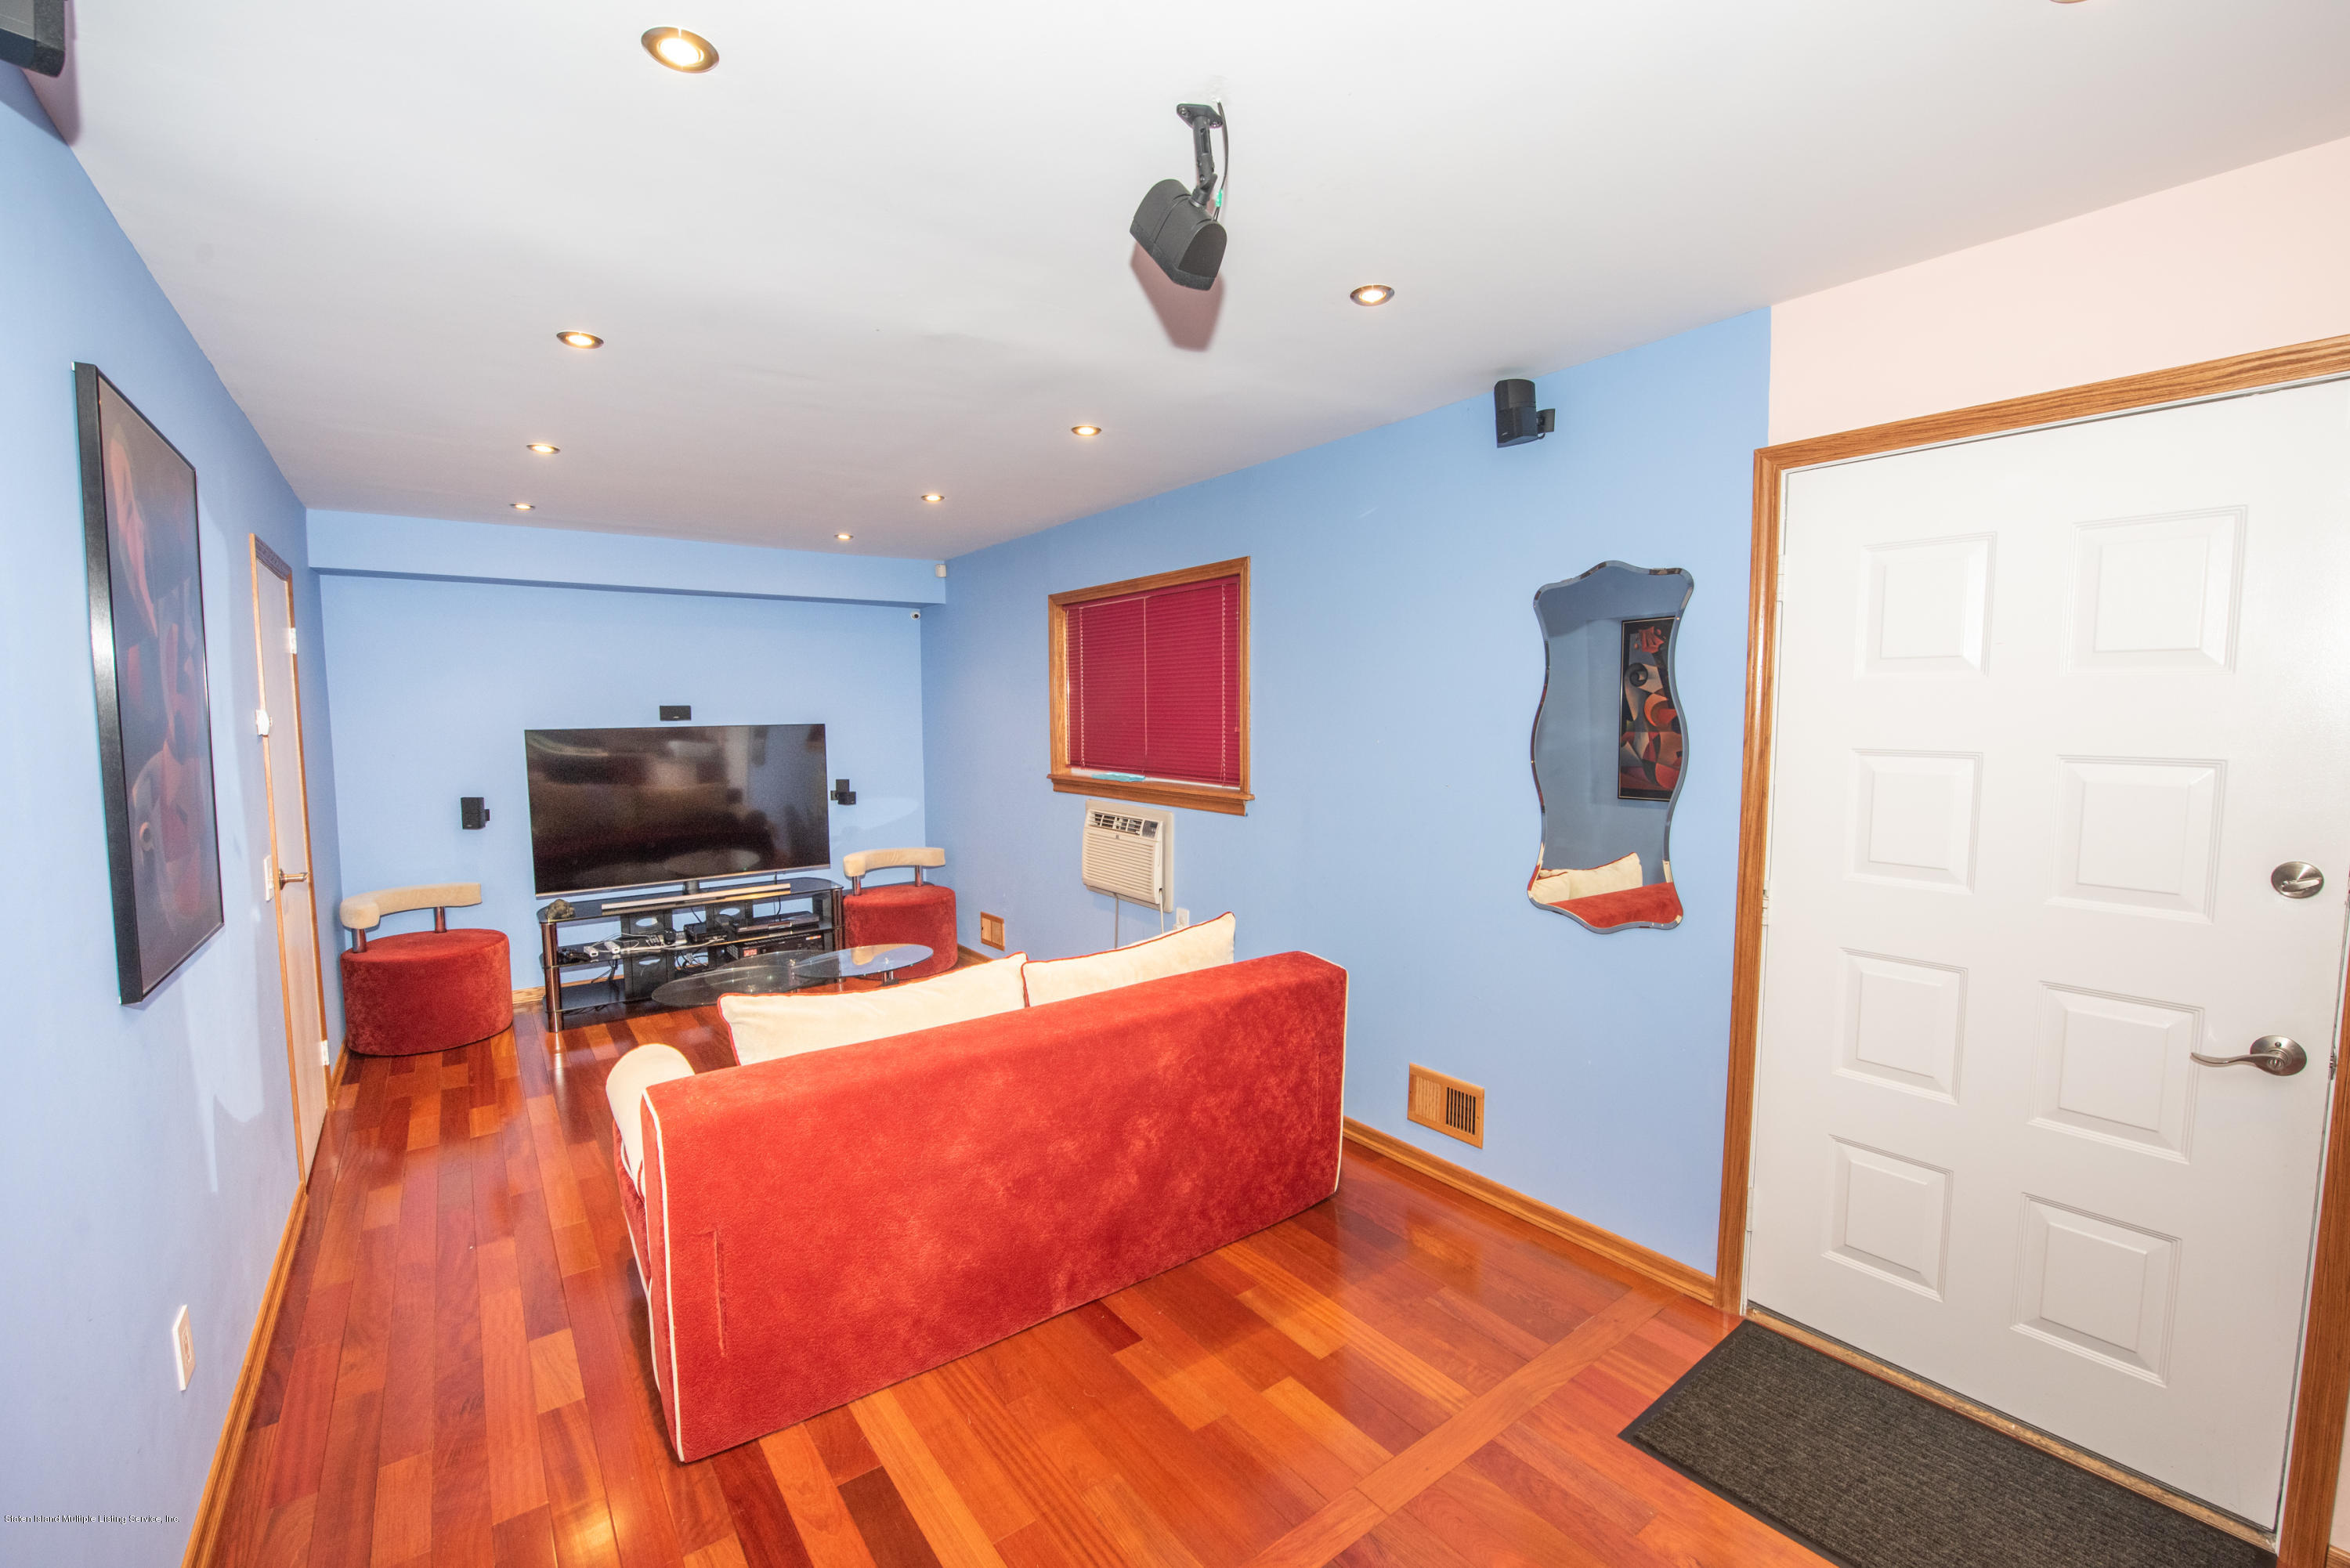 Single Family - Semi-Attached 76 Mcveigh Avenue  Staten Island, NY 10314, MLS-1133370-32